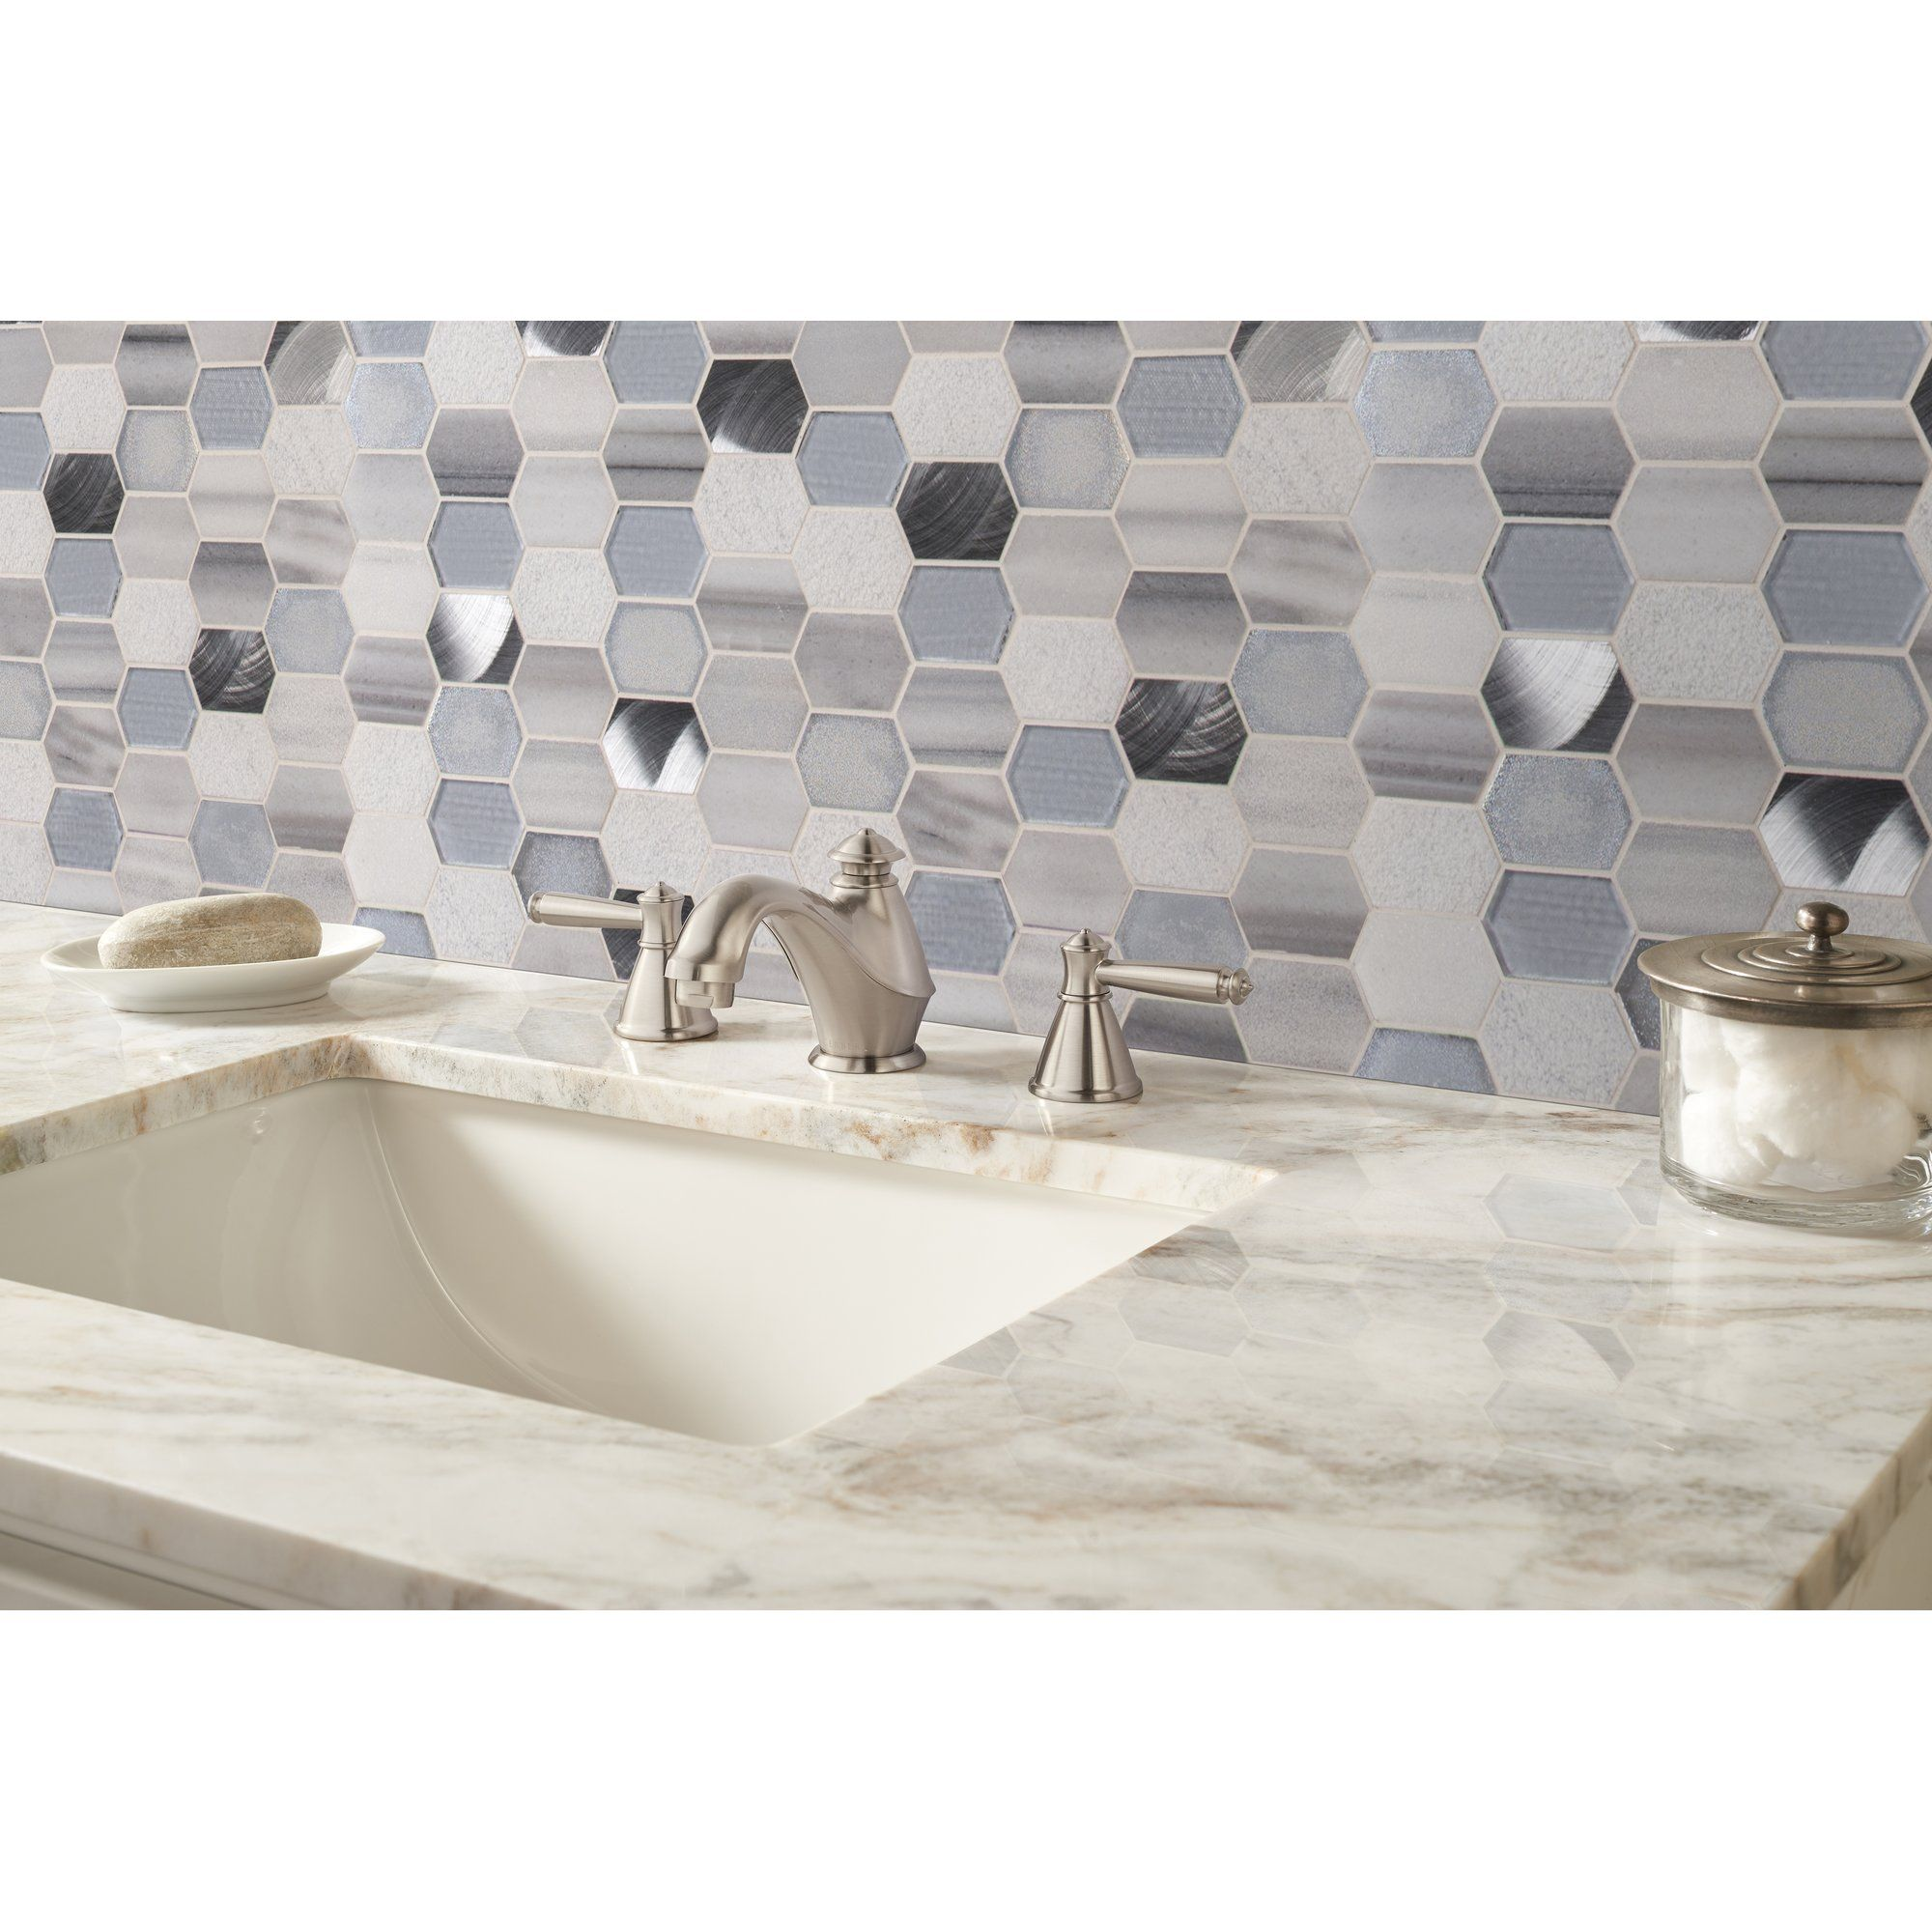 - 9-Harlow Picket Pattern Glass/Stone Mosaic Stone Mosaic Tile